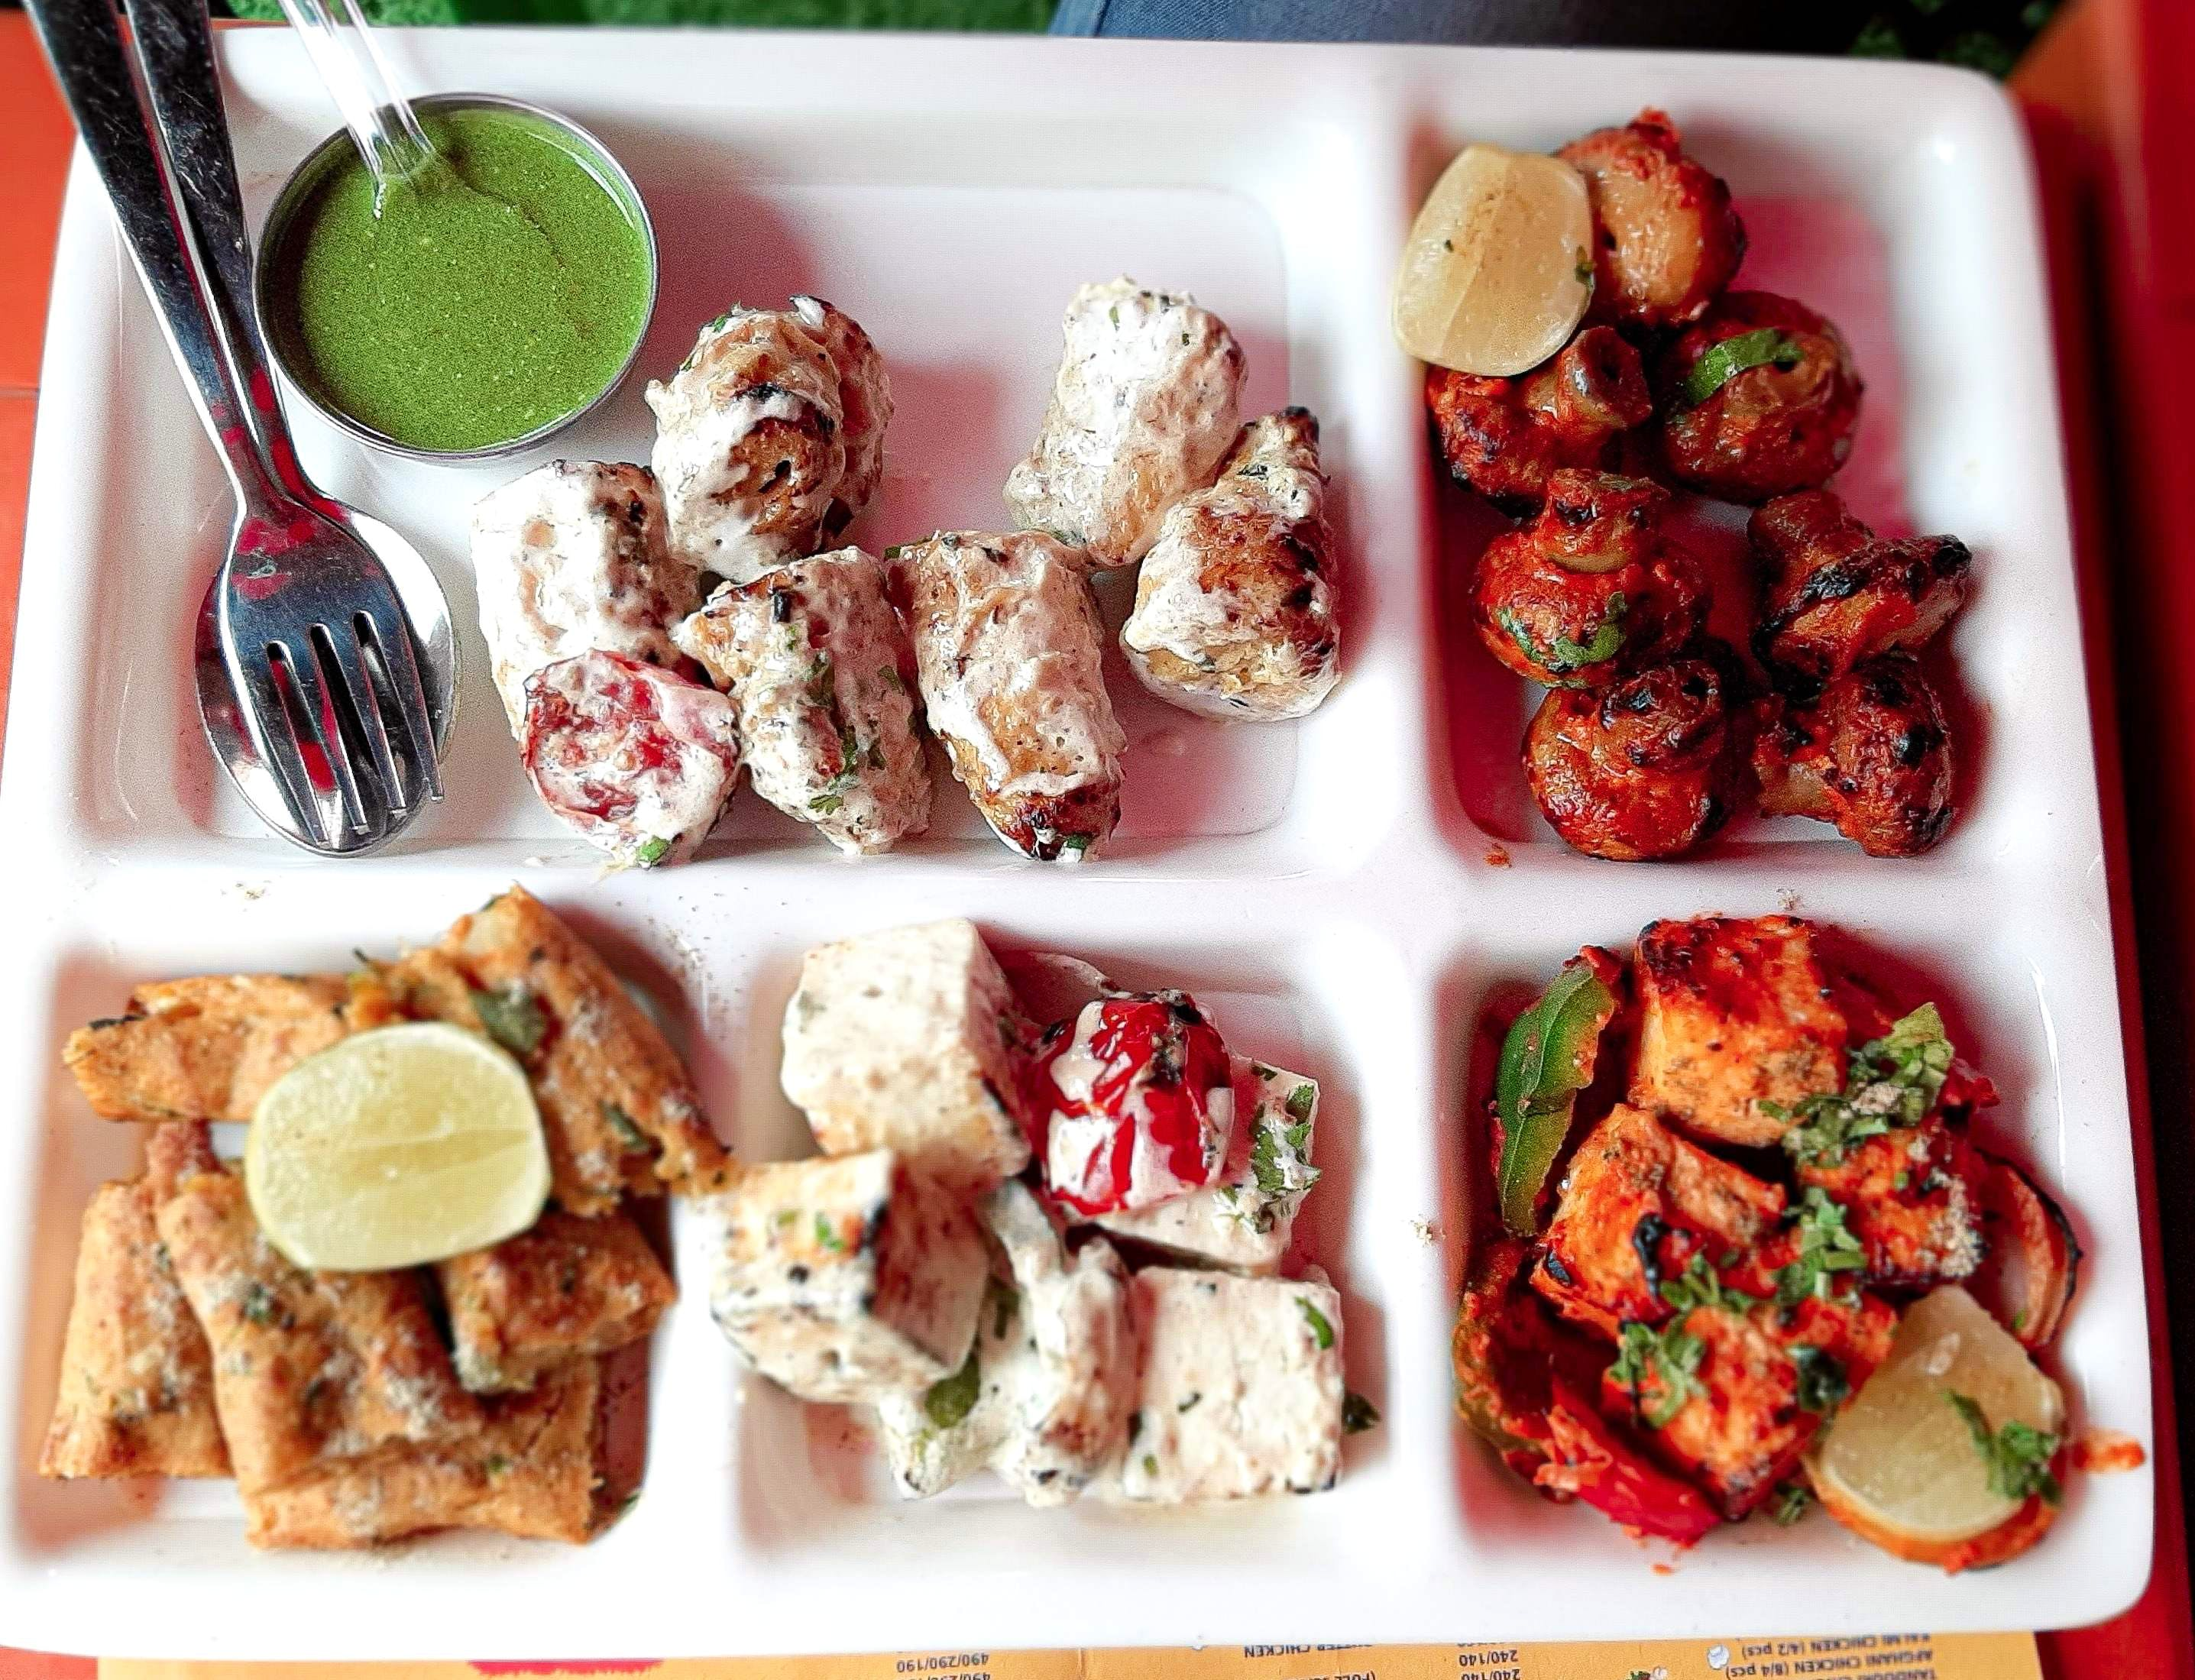 This Restaurant In Rajouri Offers Some Amazing Platters & Delish Main Course